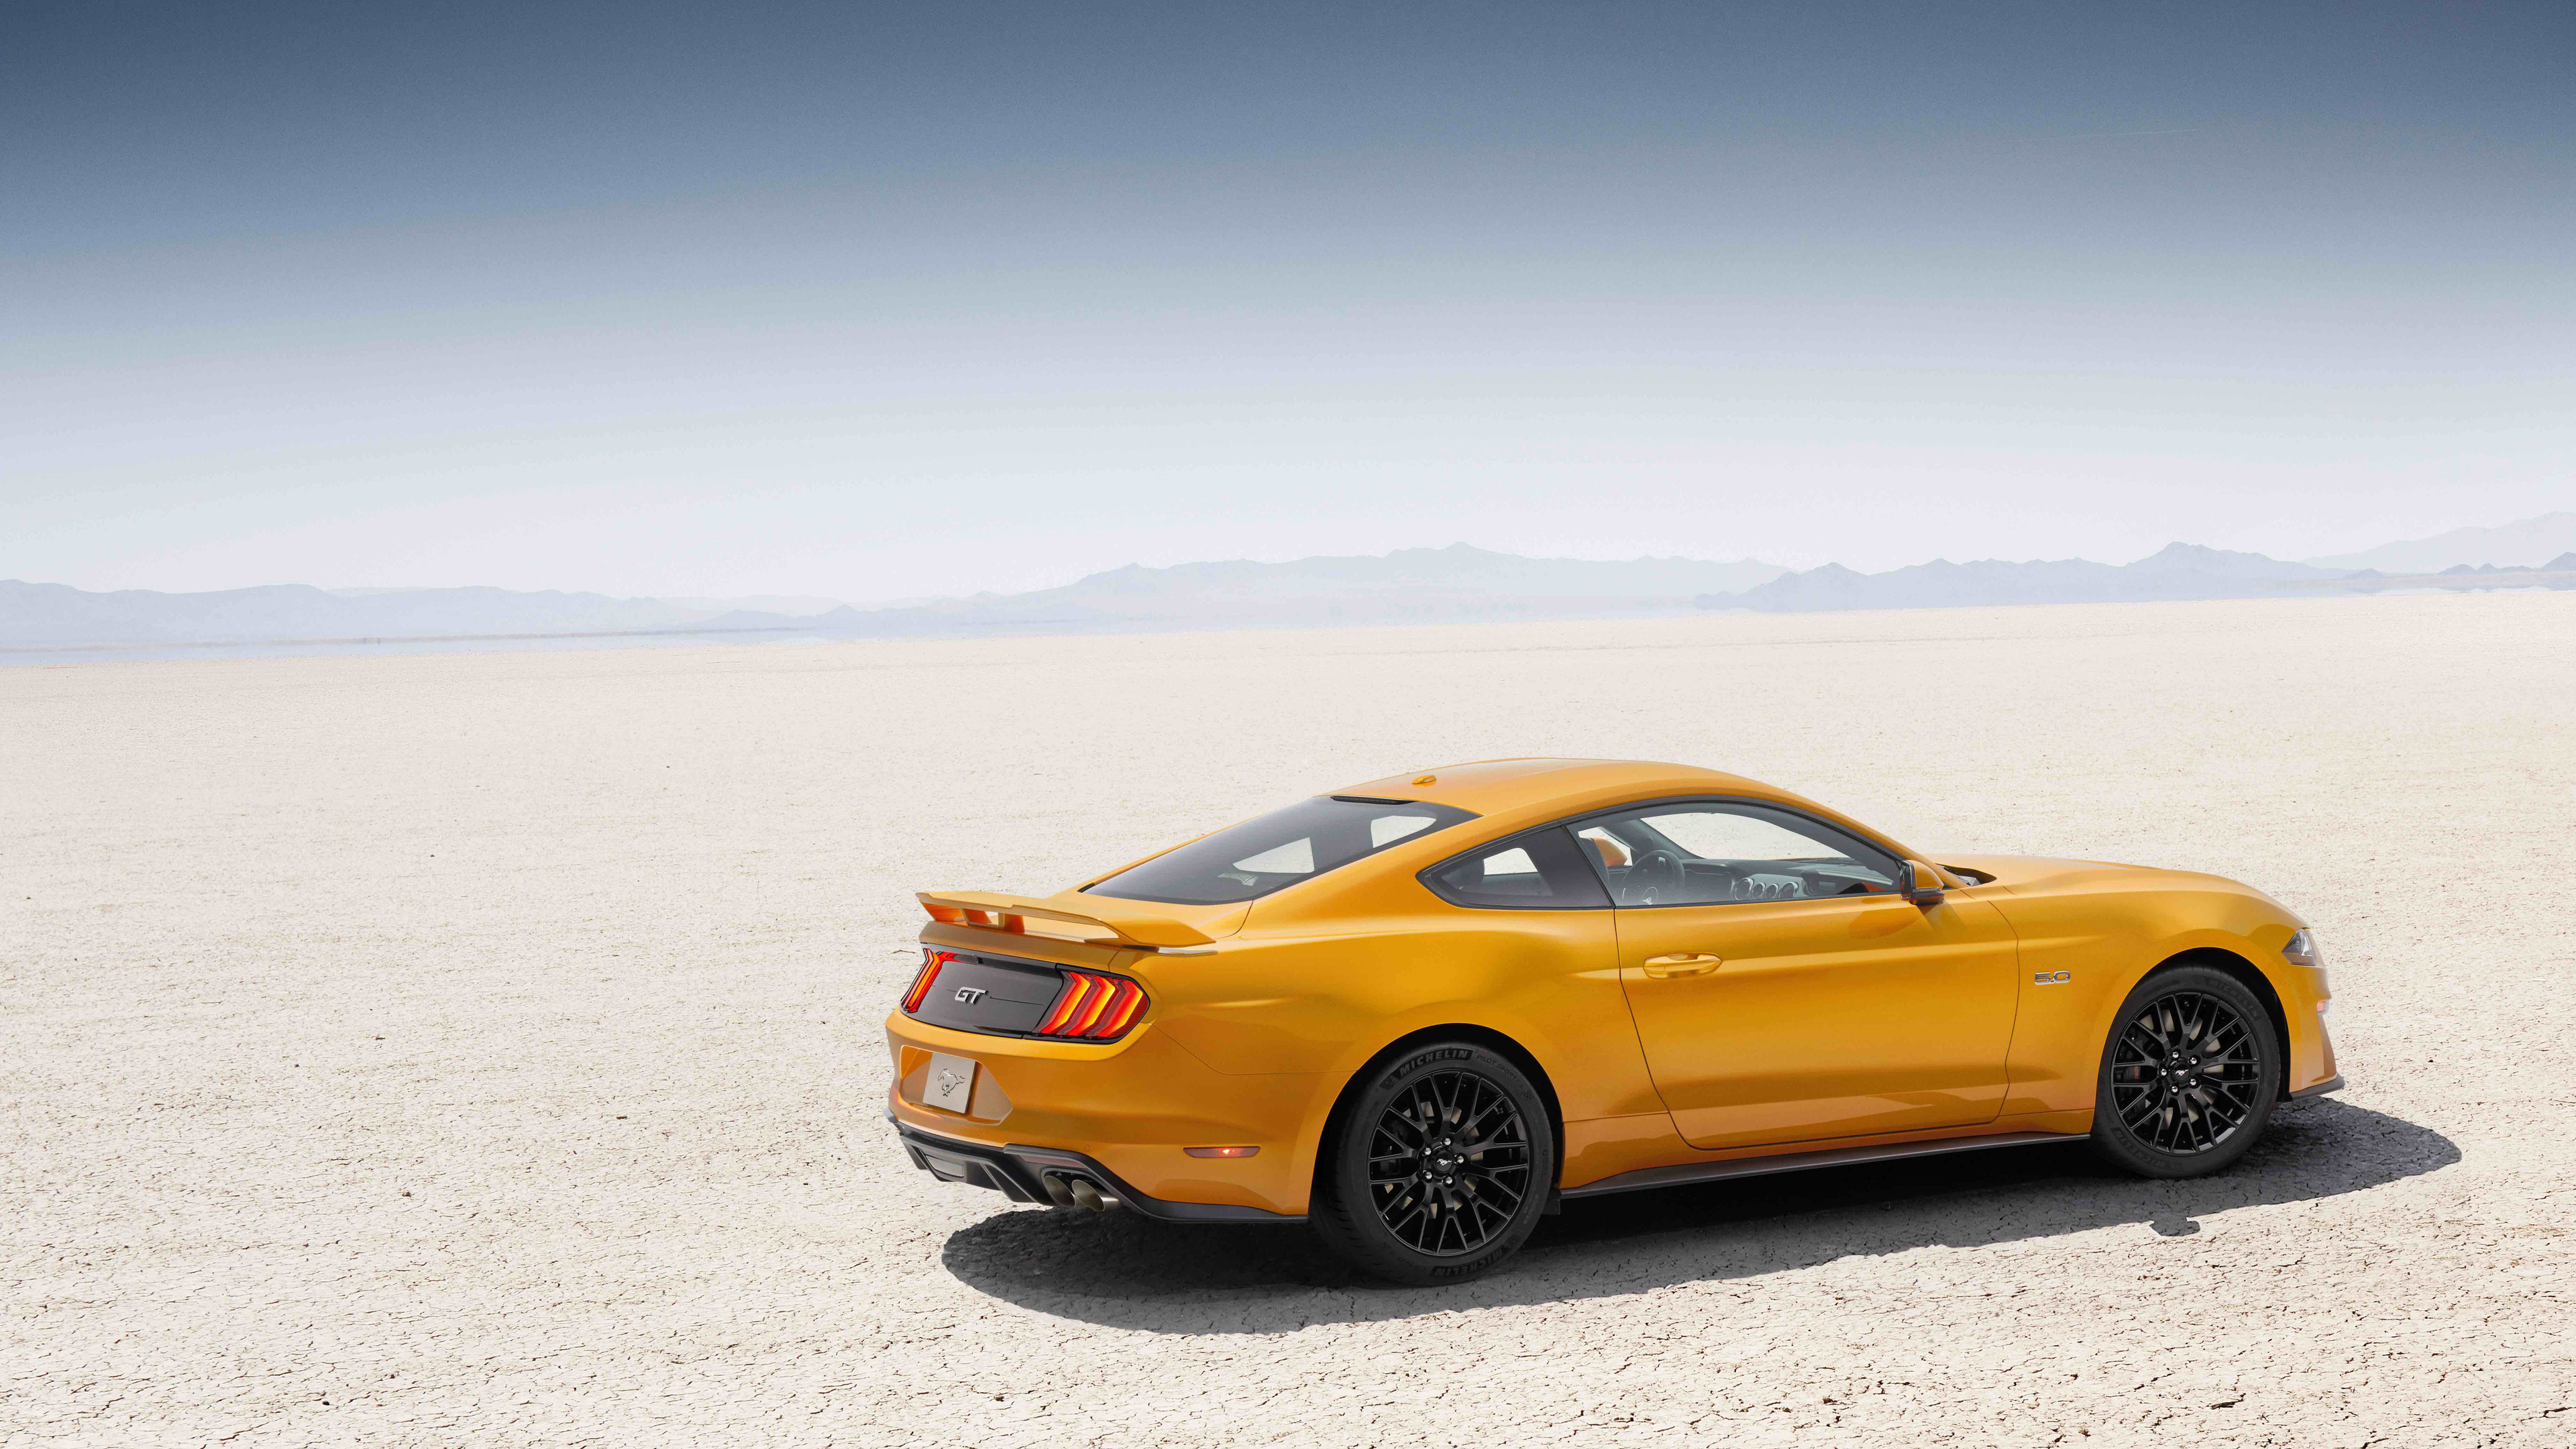 ford mustang v8 gt performace pack 1539111749 - Ford Mustang V8 GT Performace Pack - mustang wallpapers, hd-wallpapers, ford mustang wallpapers, cars wallpapers, 8k wallpapers, 5k wallpapers, 4k-wallpapers, 2018 cars wallpapers